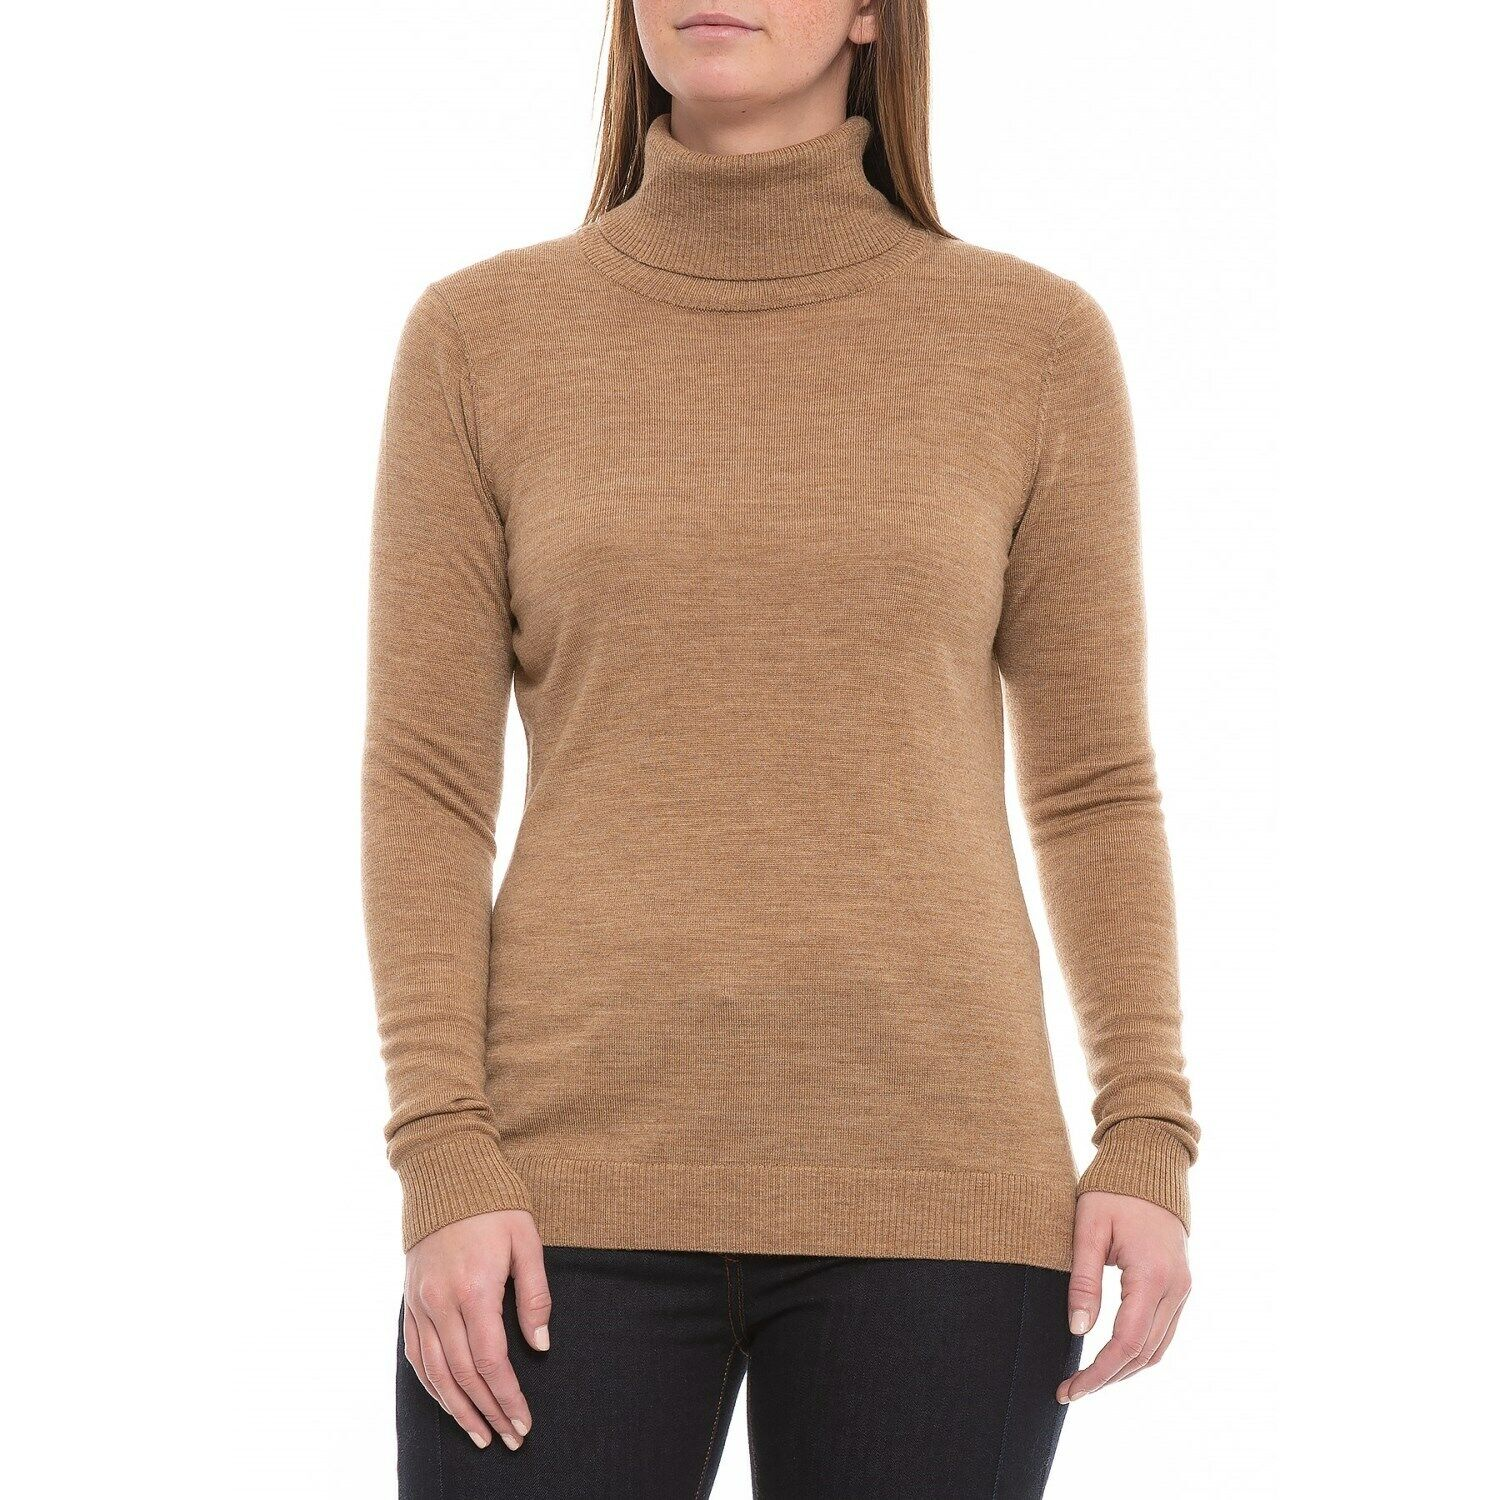 Ladies Camel Brown Turtleneck Sweater – A New Day Medium Clothing, Shoes & Accessories